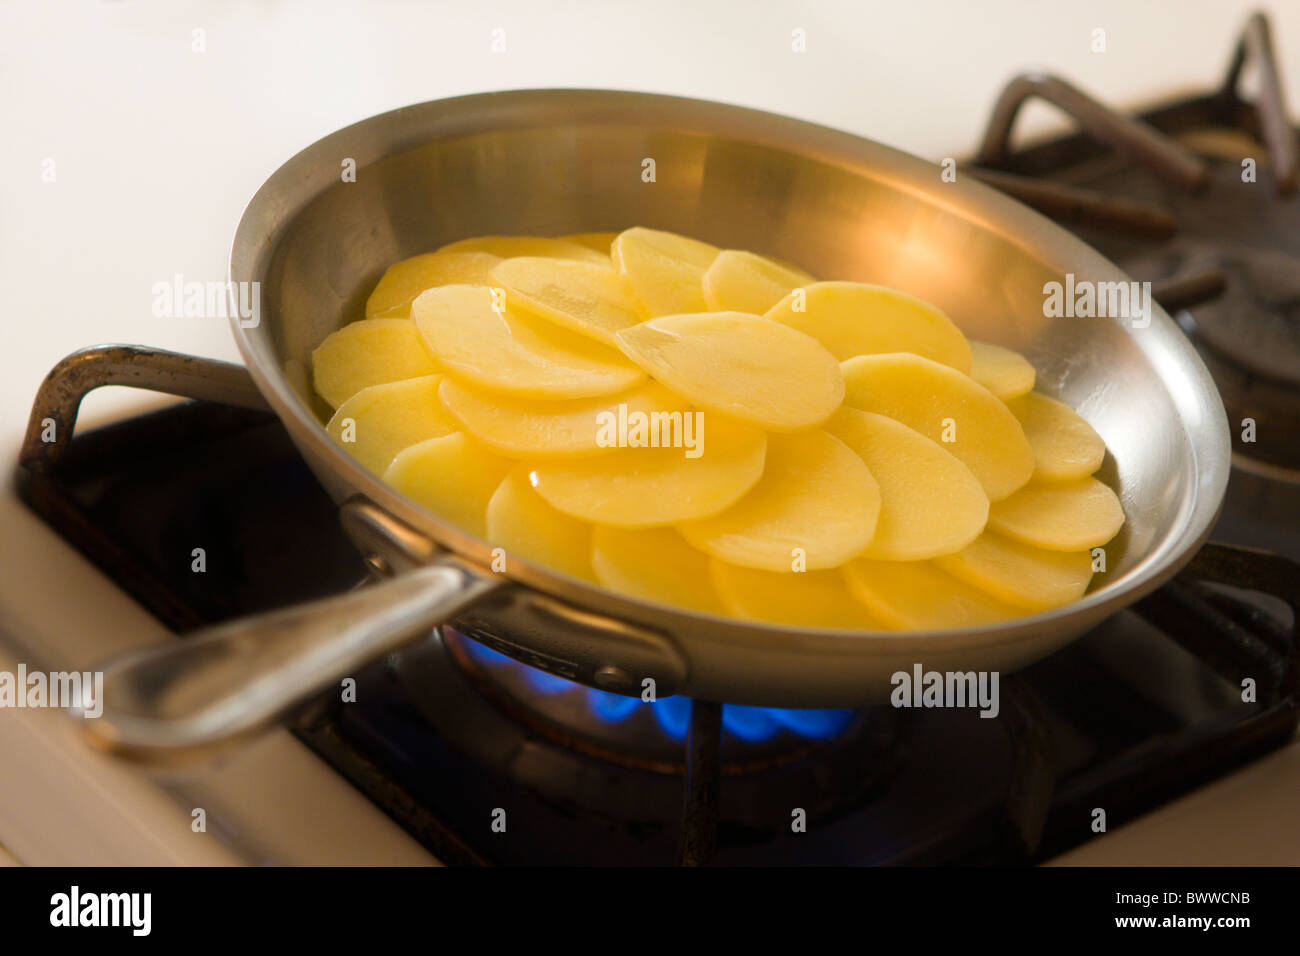 The various steps of preparing potatoes Anna using a brushed aluminum sauteuse with stainless steel lining. - Stock Image